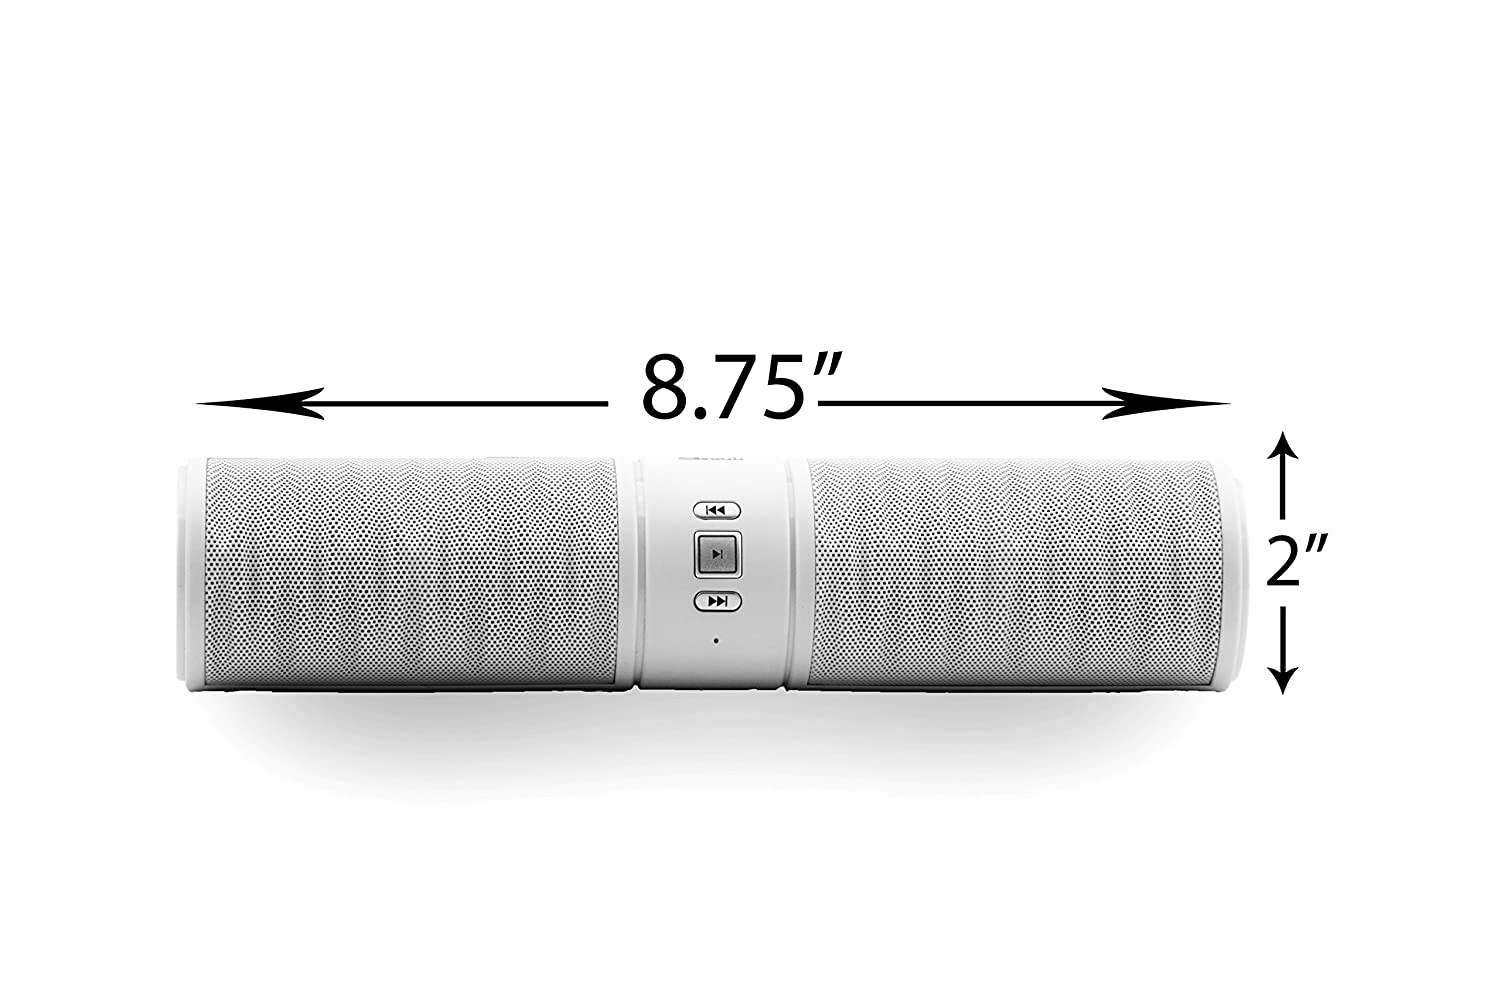 Wireless Bluetooth Speaker, Roll (White) Ultra-portable , Powerful Sound with Build in Microphone, Works for Iphone 4, 4s, 5, 5s, 6, 6 Plus, Ipad Mini, Ipad 4/3/2, Itouch, Blackberry, Nexus, Samsung, Htc, Lg and Other Smart Phones, Tablets and Mp3 Player stylish protective pu leather case for iphone 5c white transparent black